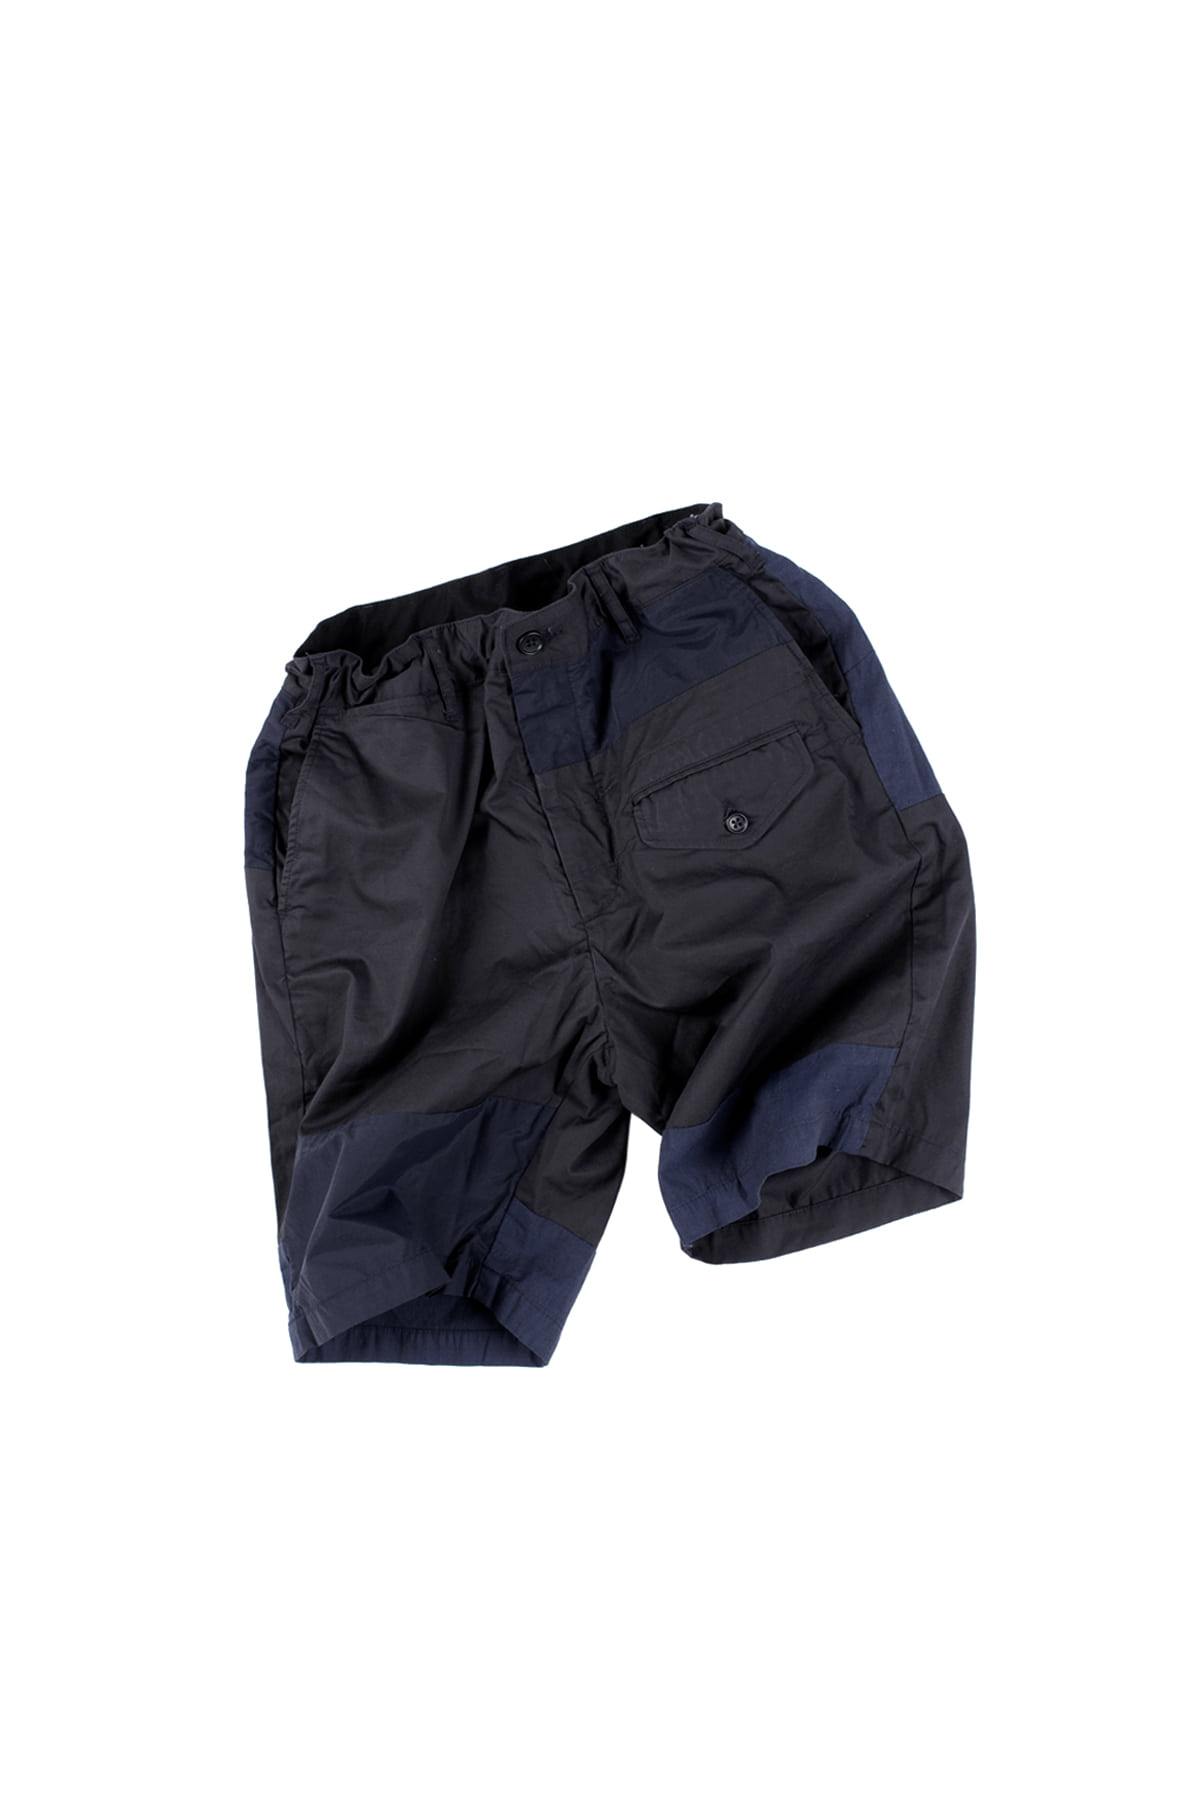 Engineered Garments : Ghurka Short (Navy)